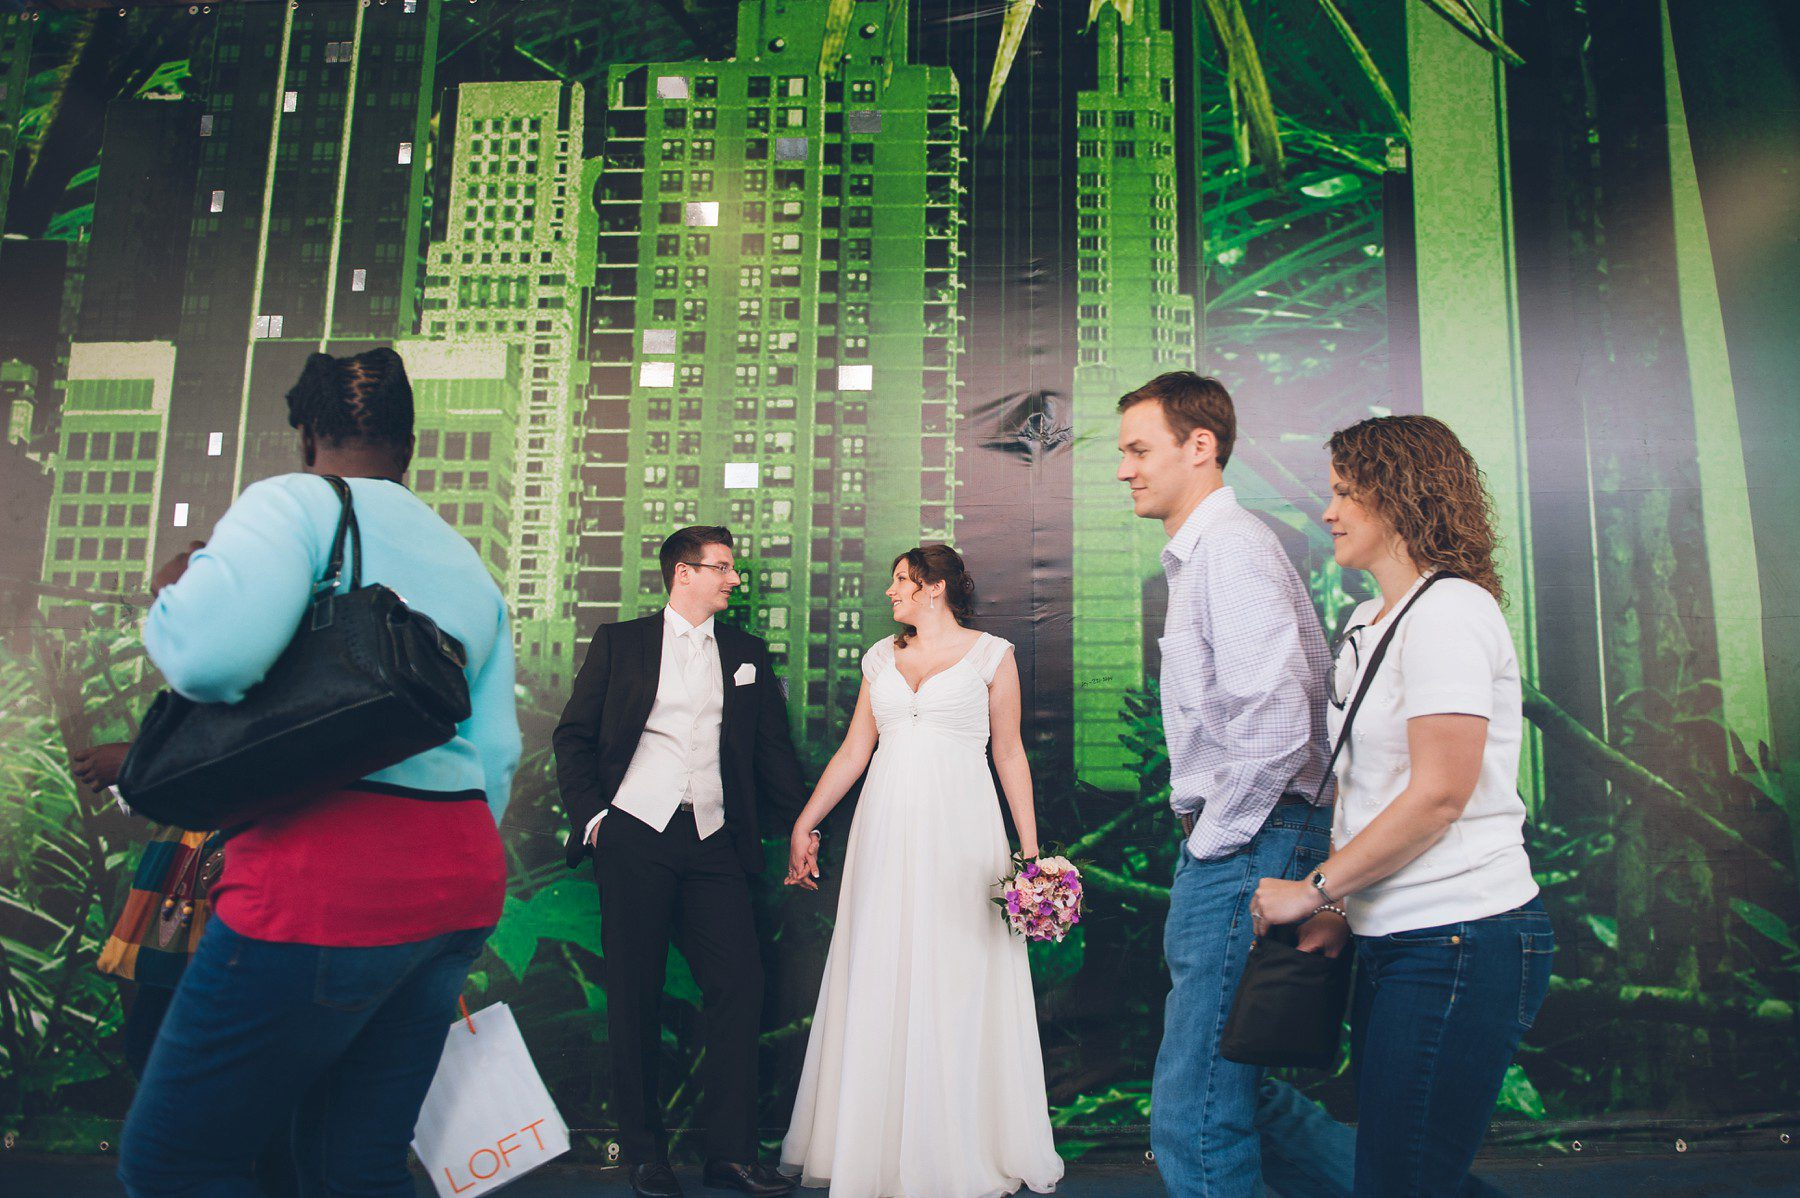 New York elopement photographer  The NYC elopement of Nicole  Andre  Heiraten in New York City